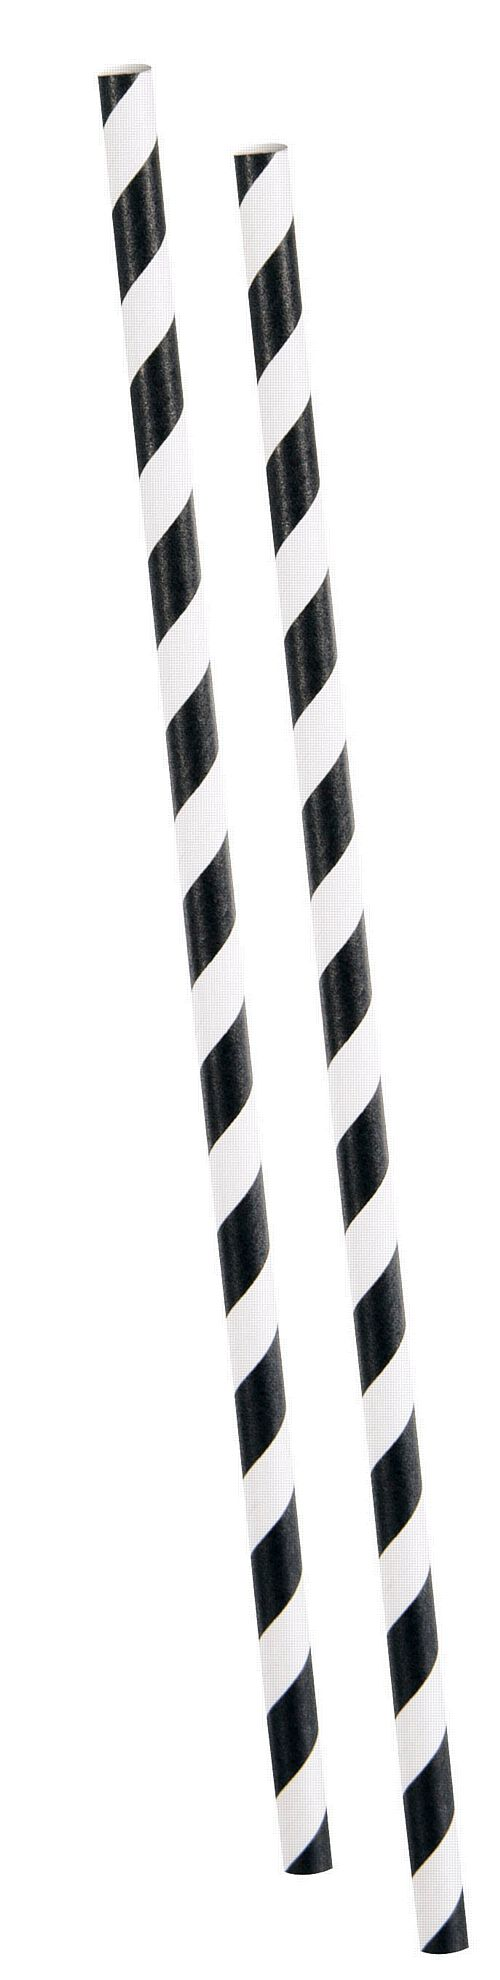 Black Striped Paper Straws - Pack of 10